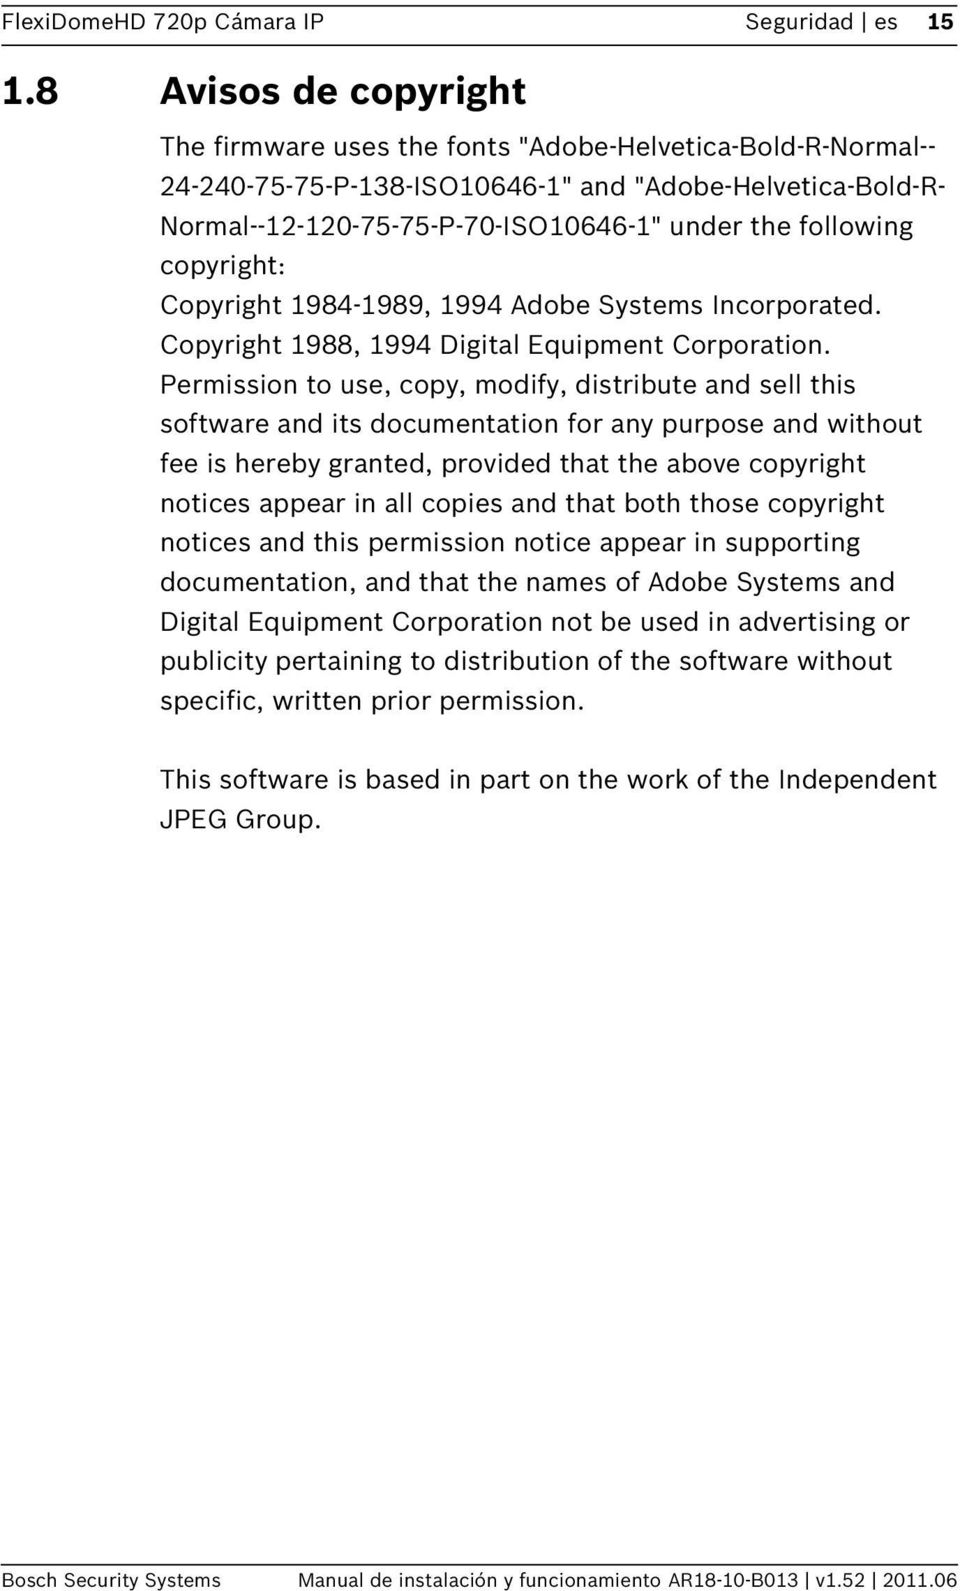 following copyright: Copyright 1984-1989, 1994 Adobe Systems Incorporated. Copyright 1988, 1994 Digital Equipment Corporation.